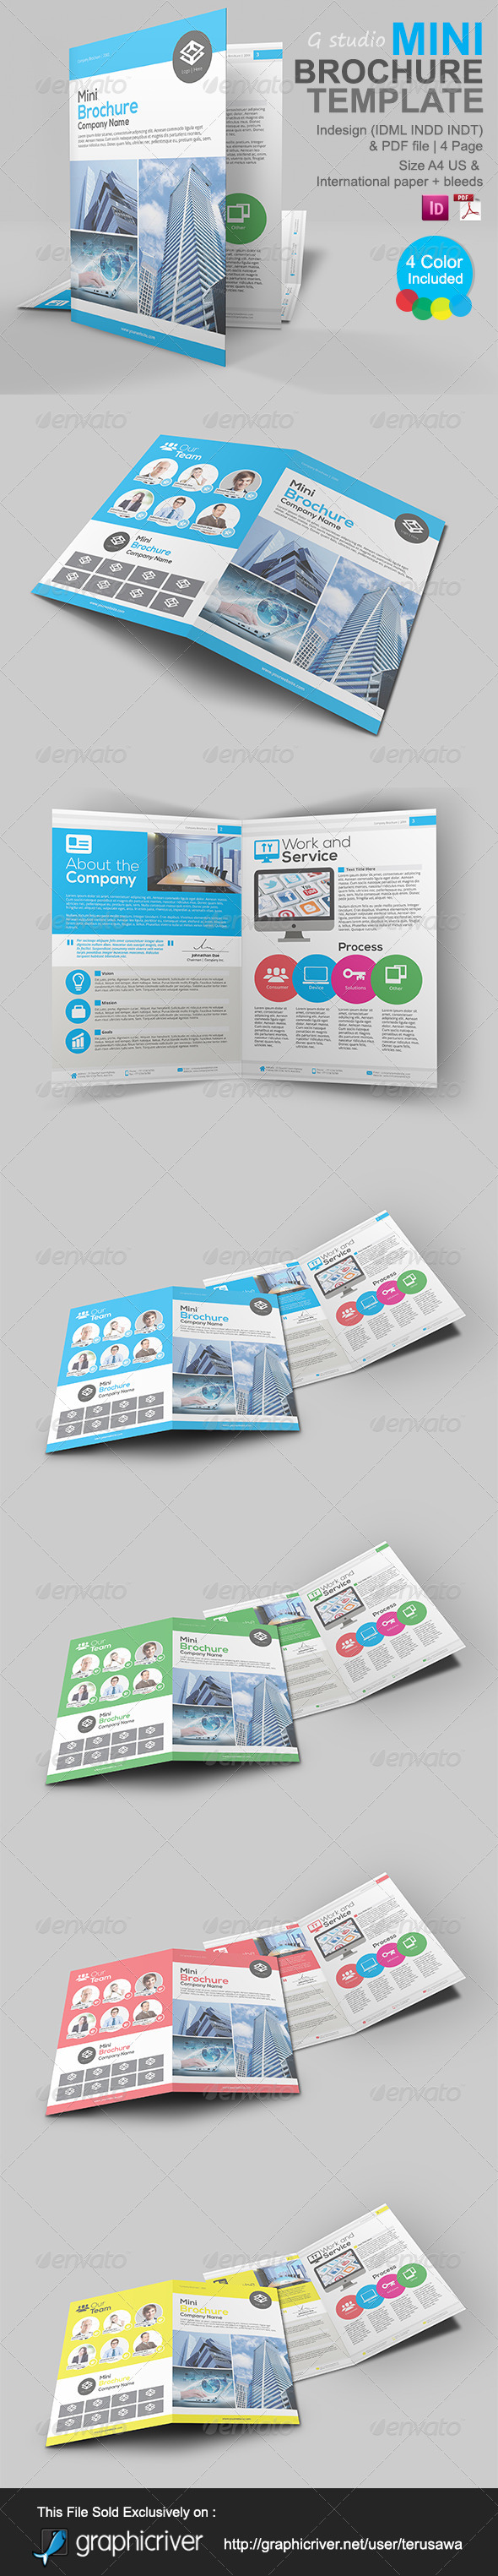 Gstudio mini brochure template by terusawa graphicriver for Mini brochure template